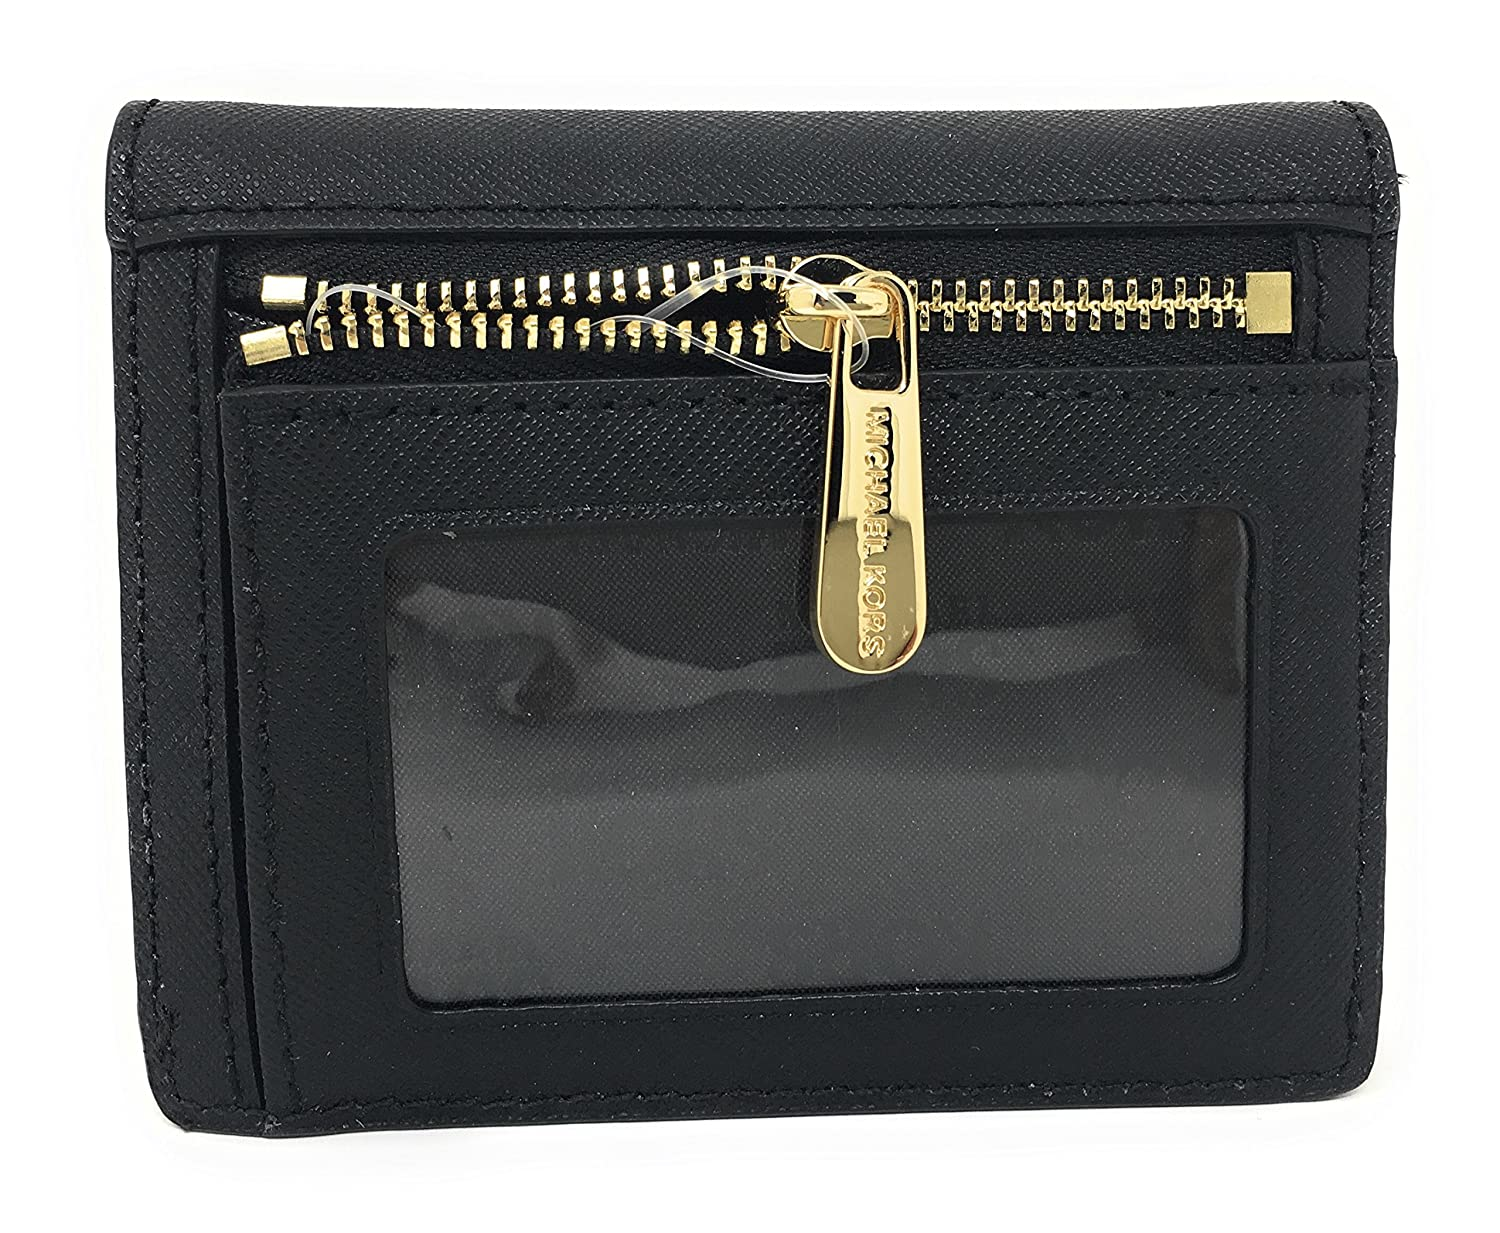 5e2437a828e679 Michael Kors Jet Travel Leather Credit Card Case ID Wallet with Key Ring  (Black): Amazon.co.uk: Clothing